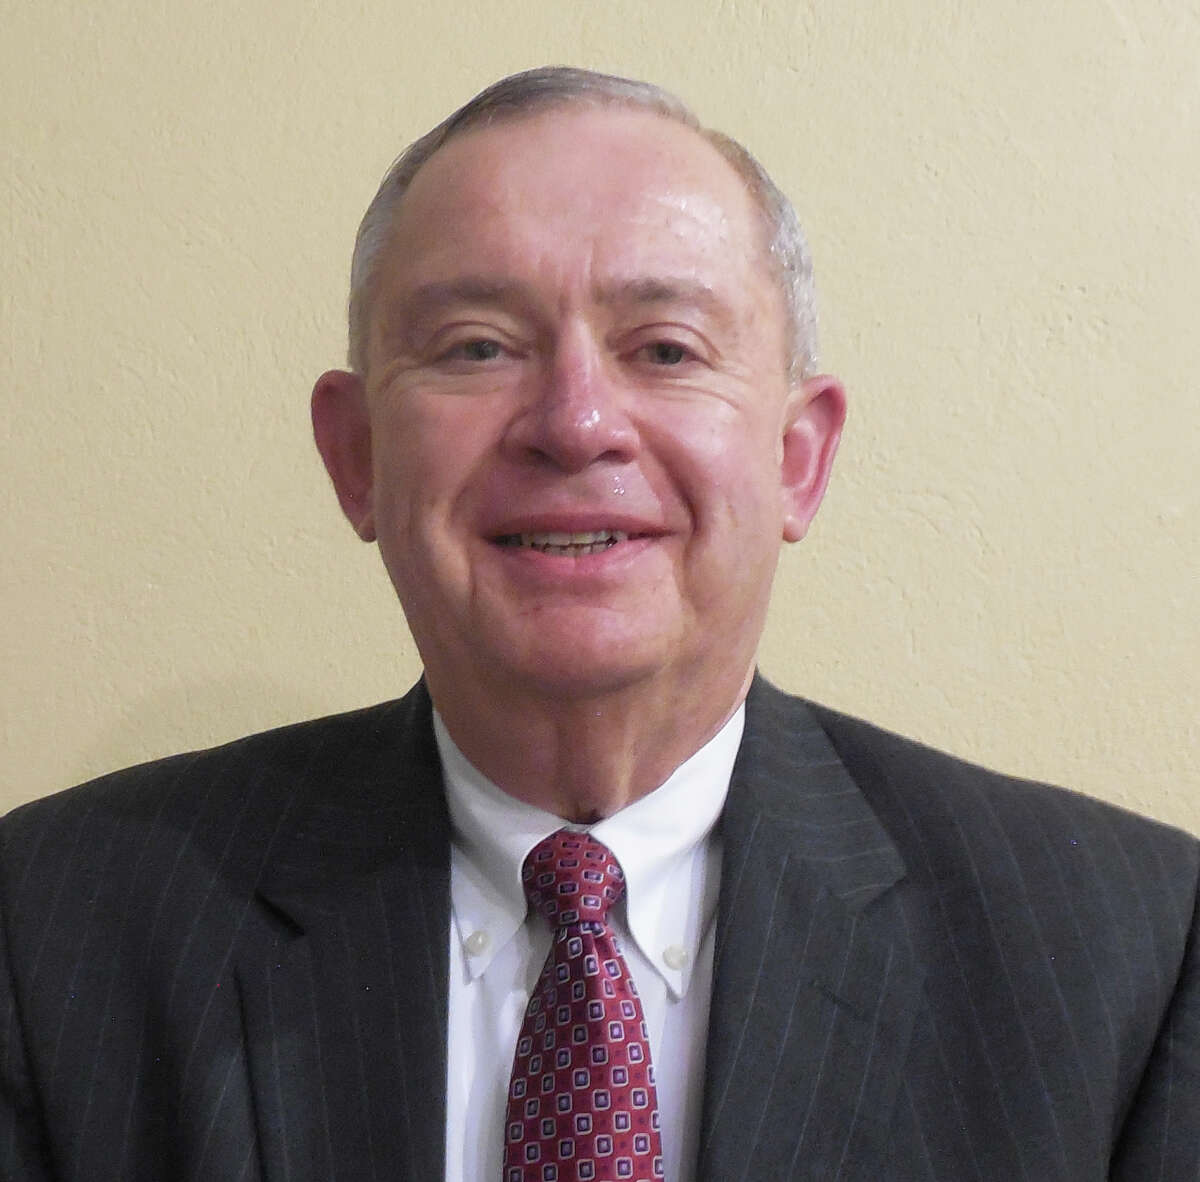 Democrat Philip Sharlach is running for state senate in the 26th District.